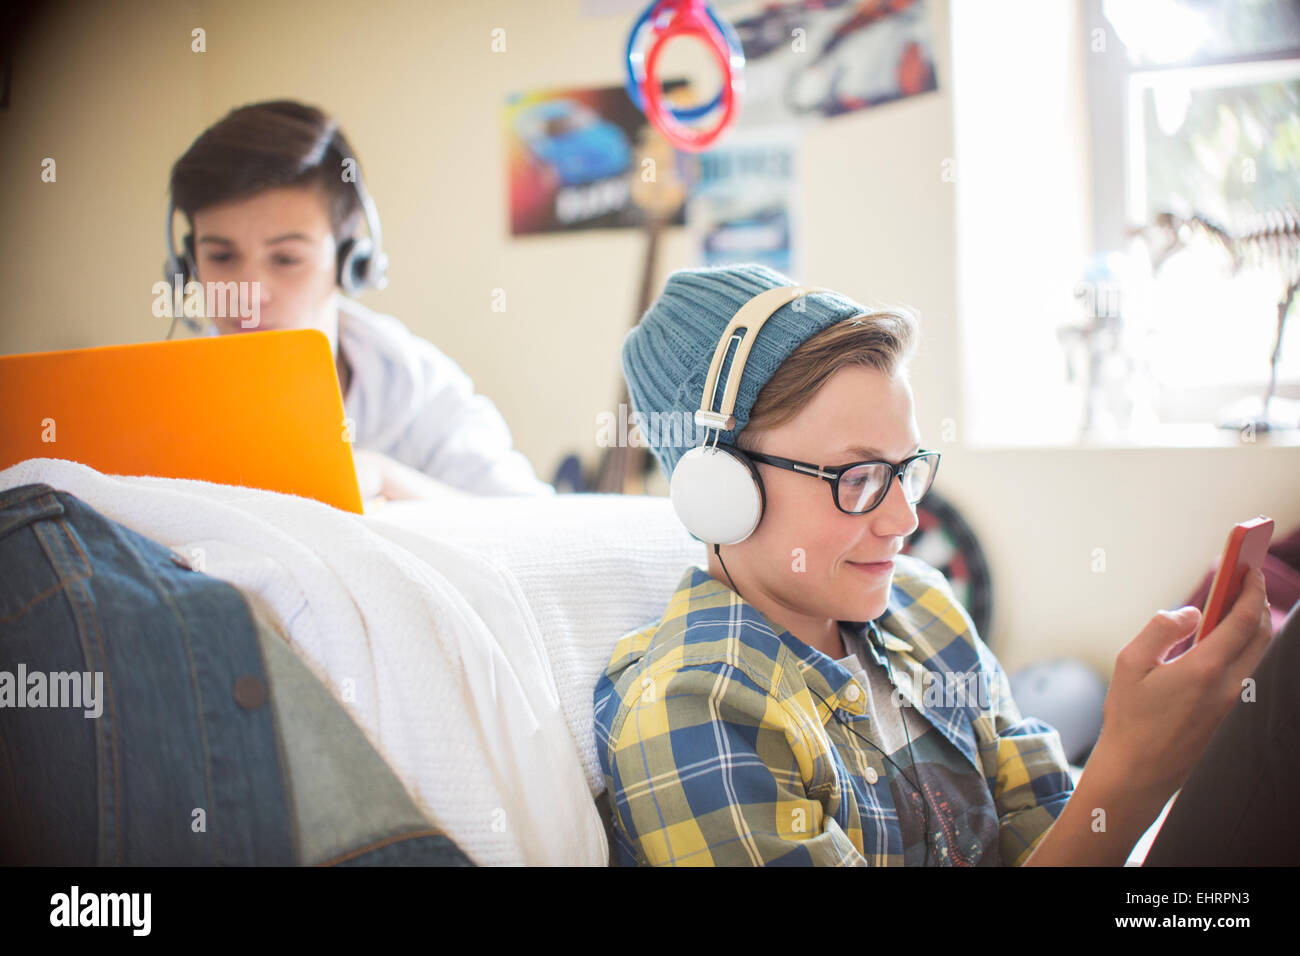 Two teenage boys using electronic devices in room - Stock Image